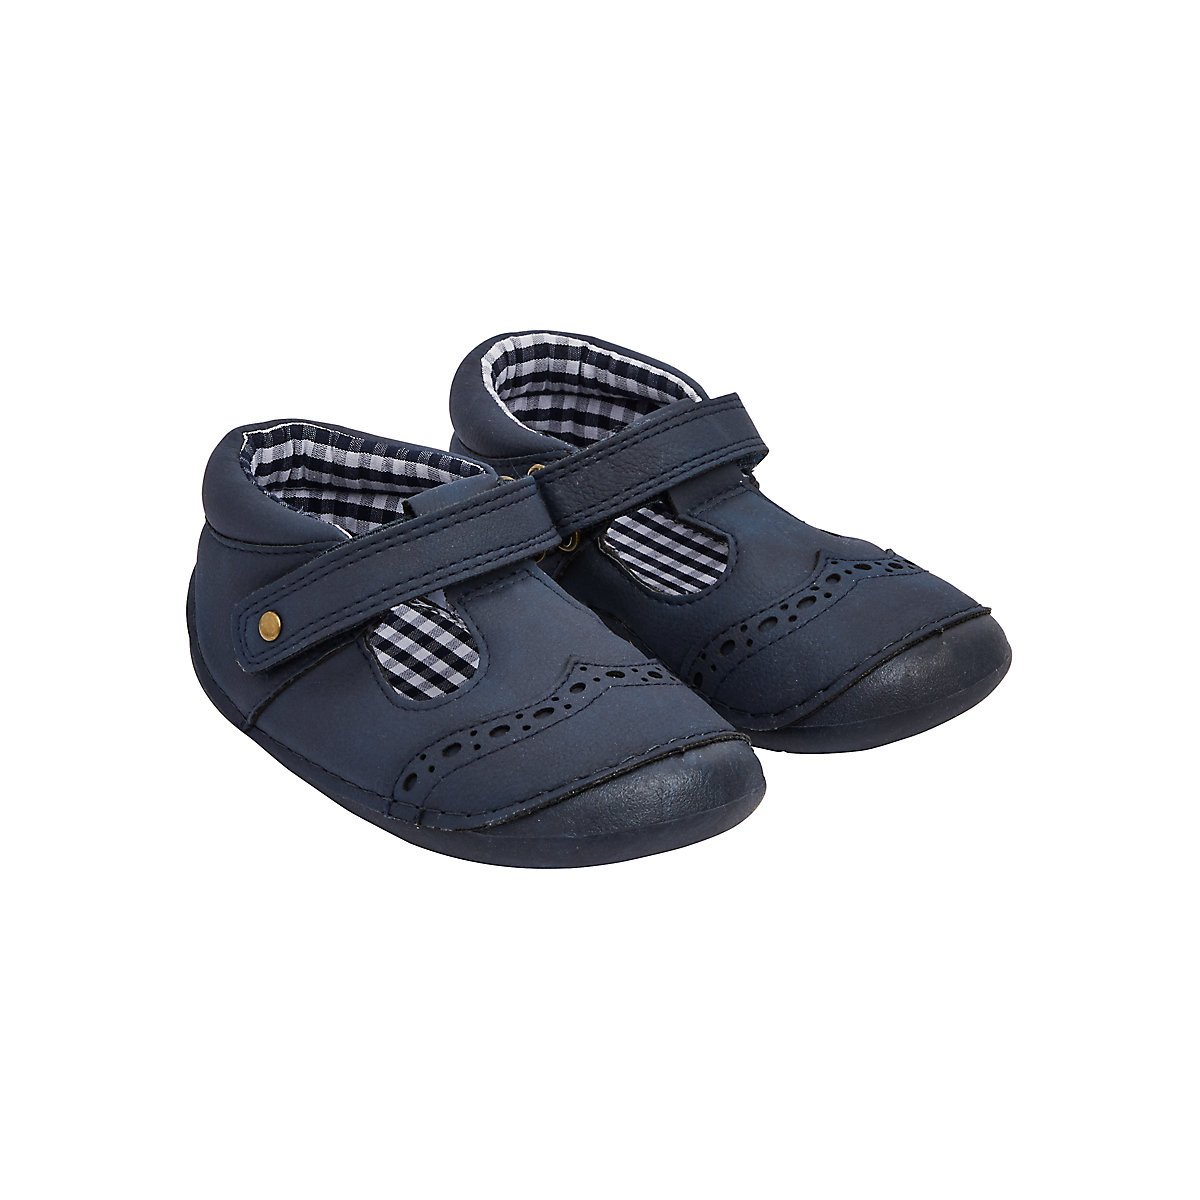 first crawlers shoes Shop Clothing